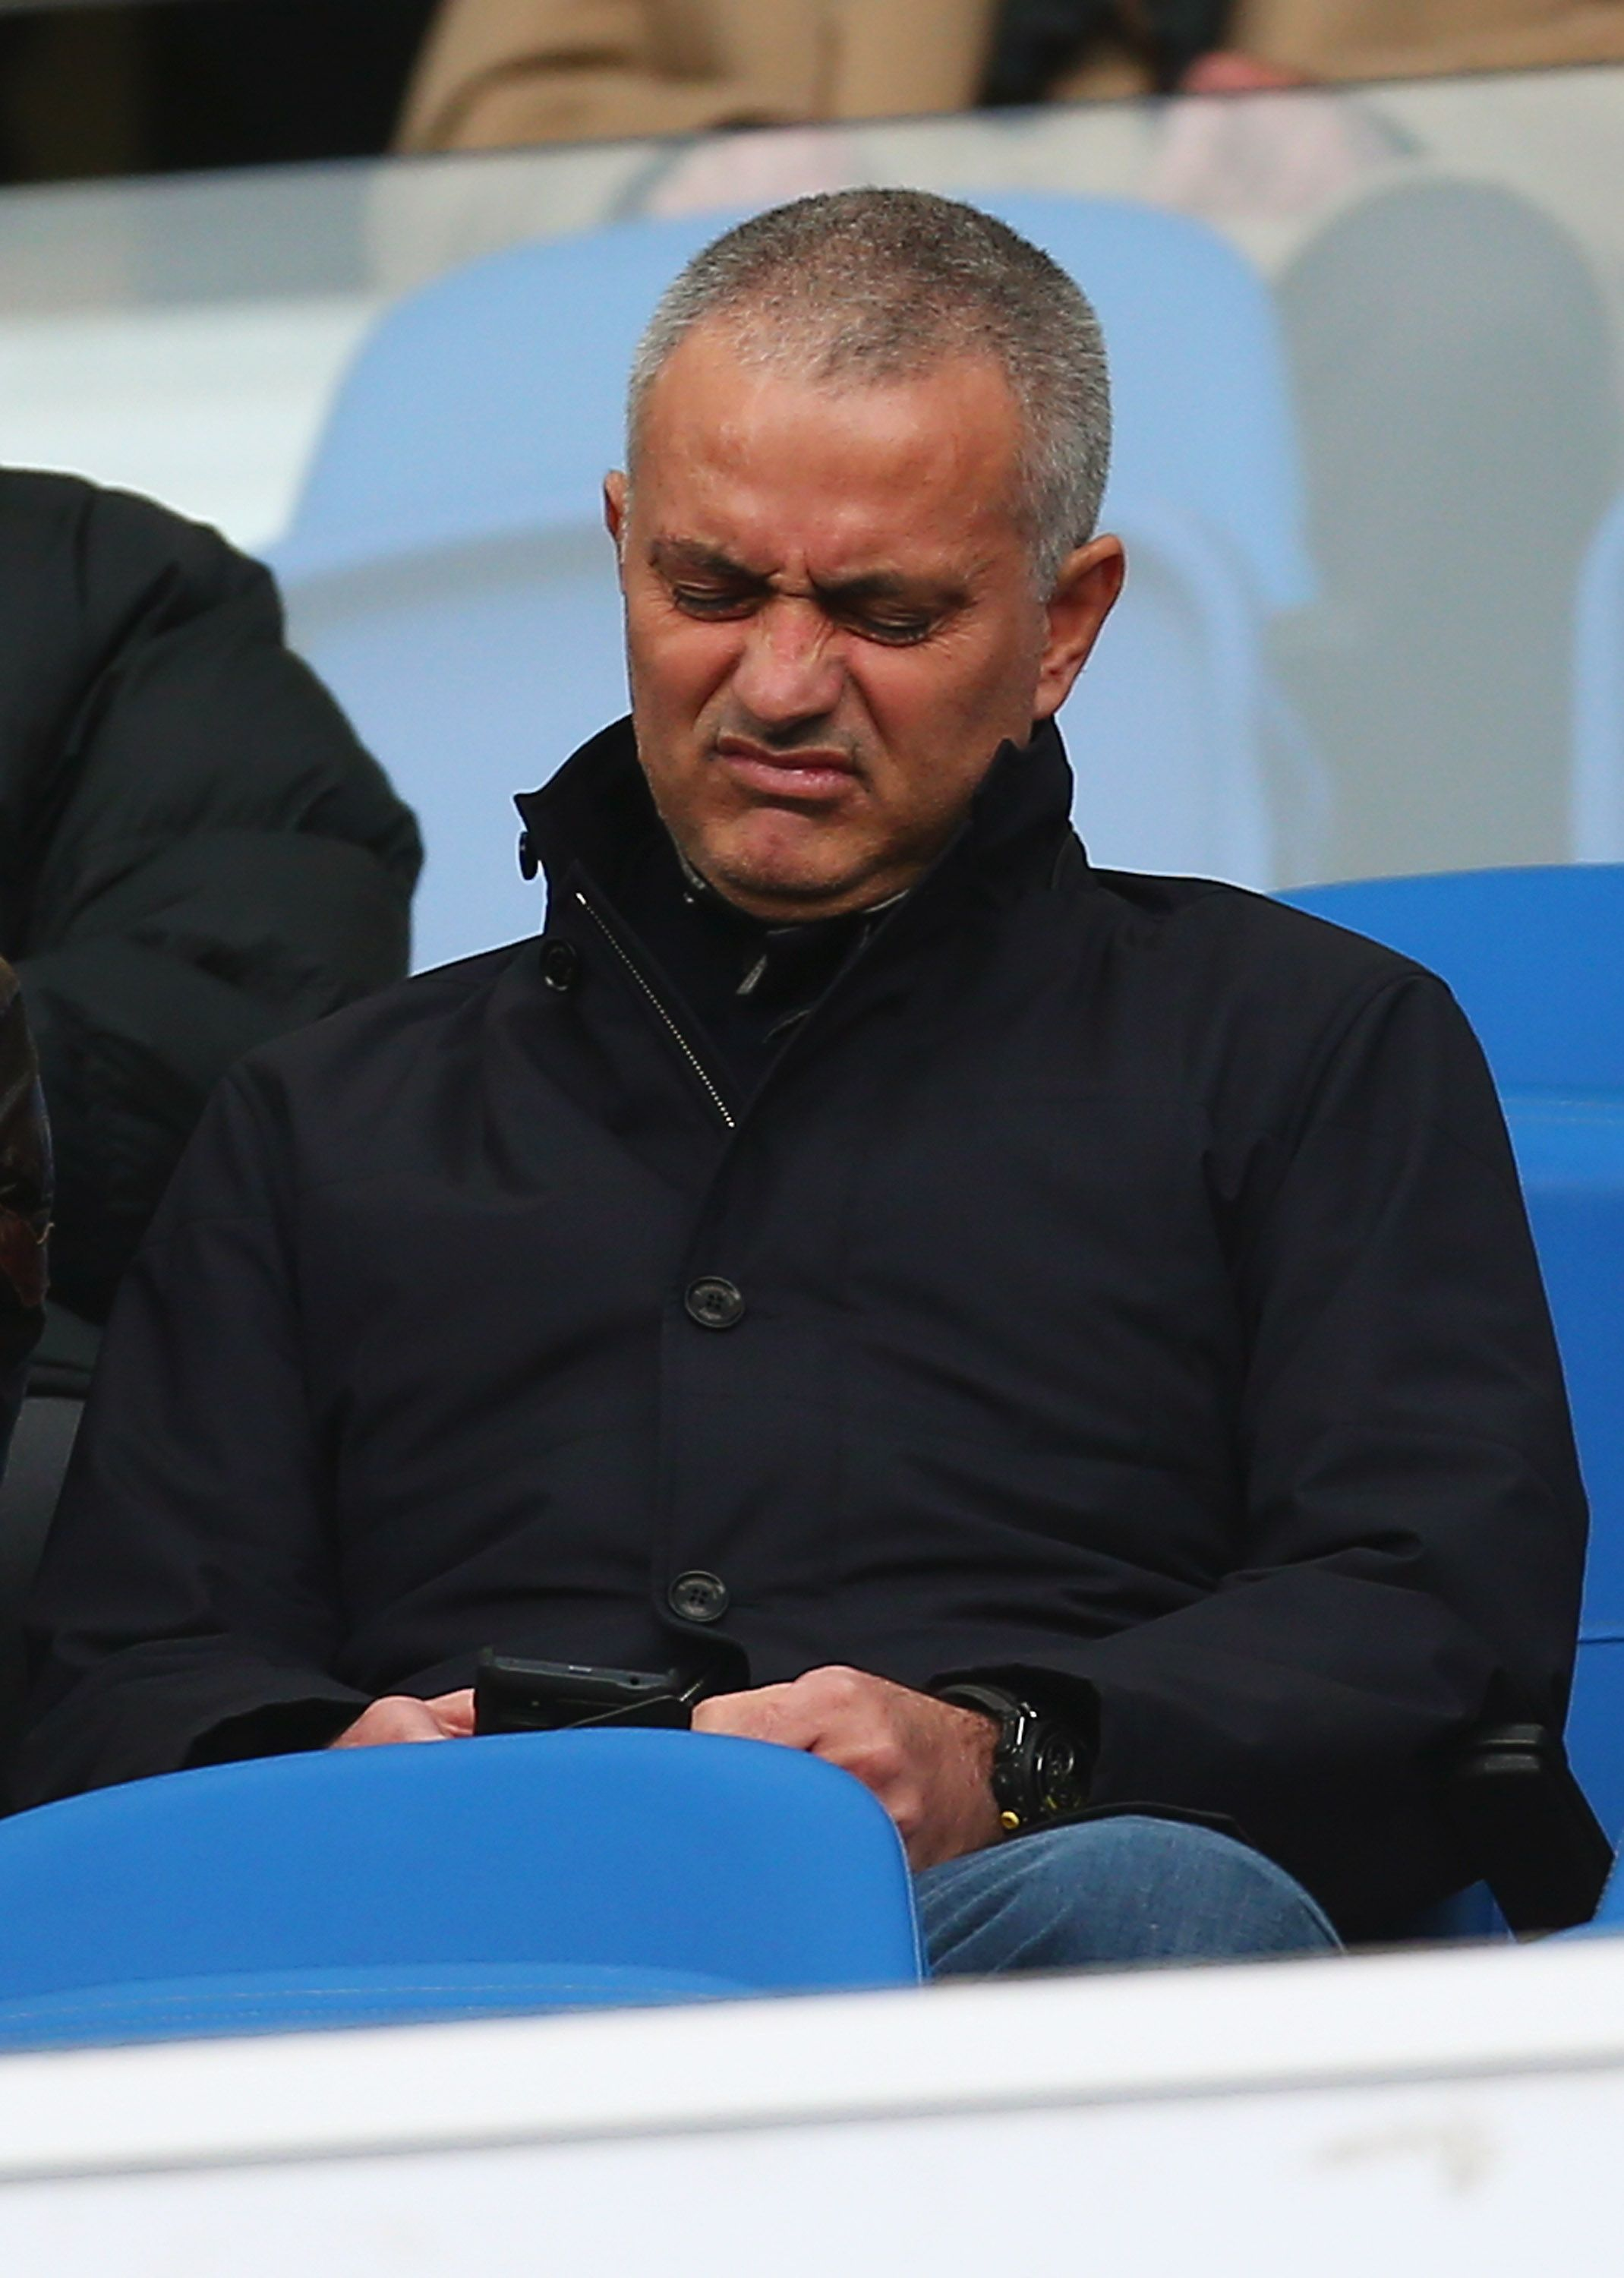 Jose Mourinho has been offered the Syrian national team job.